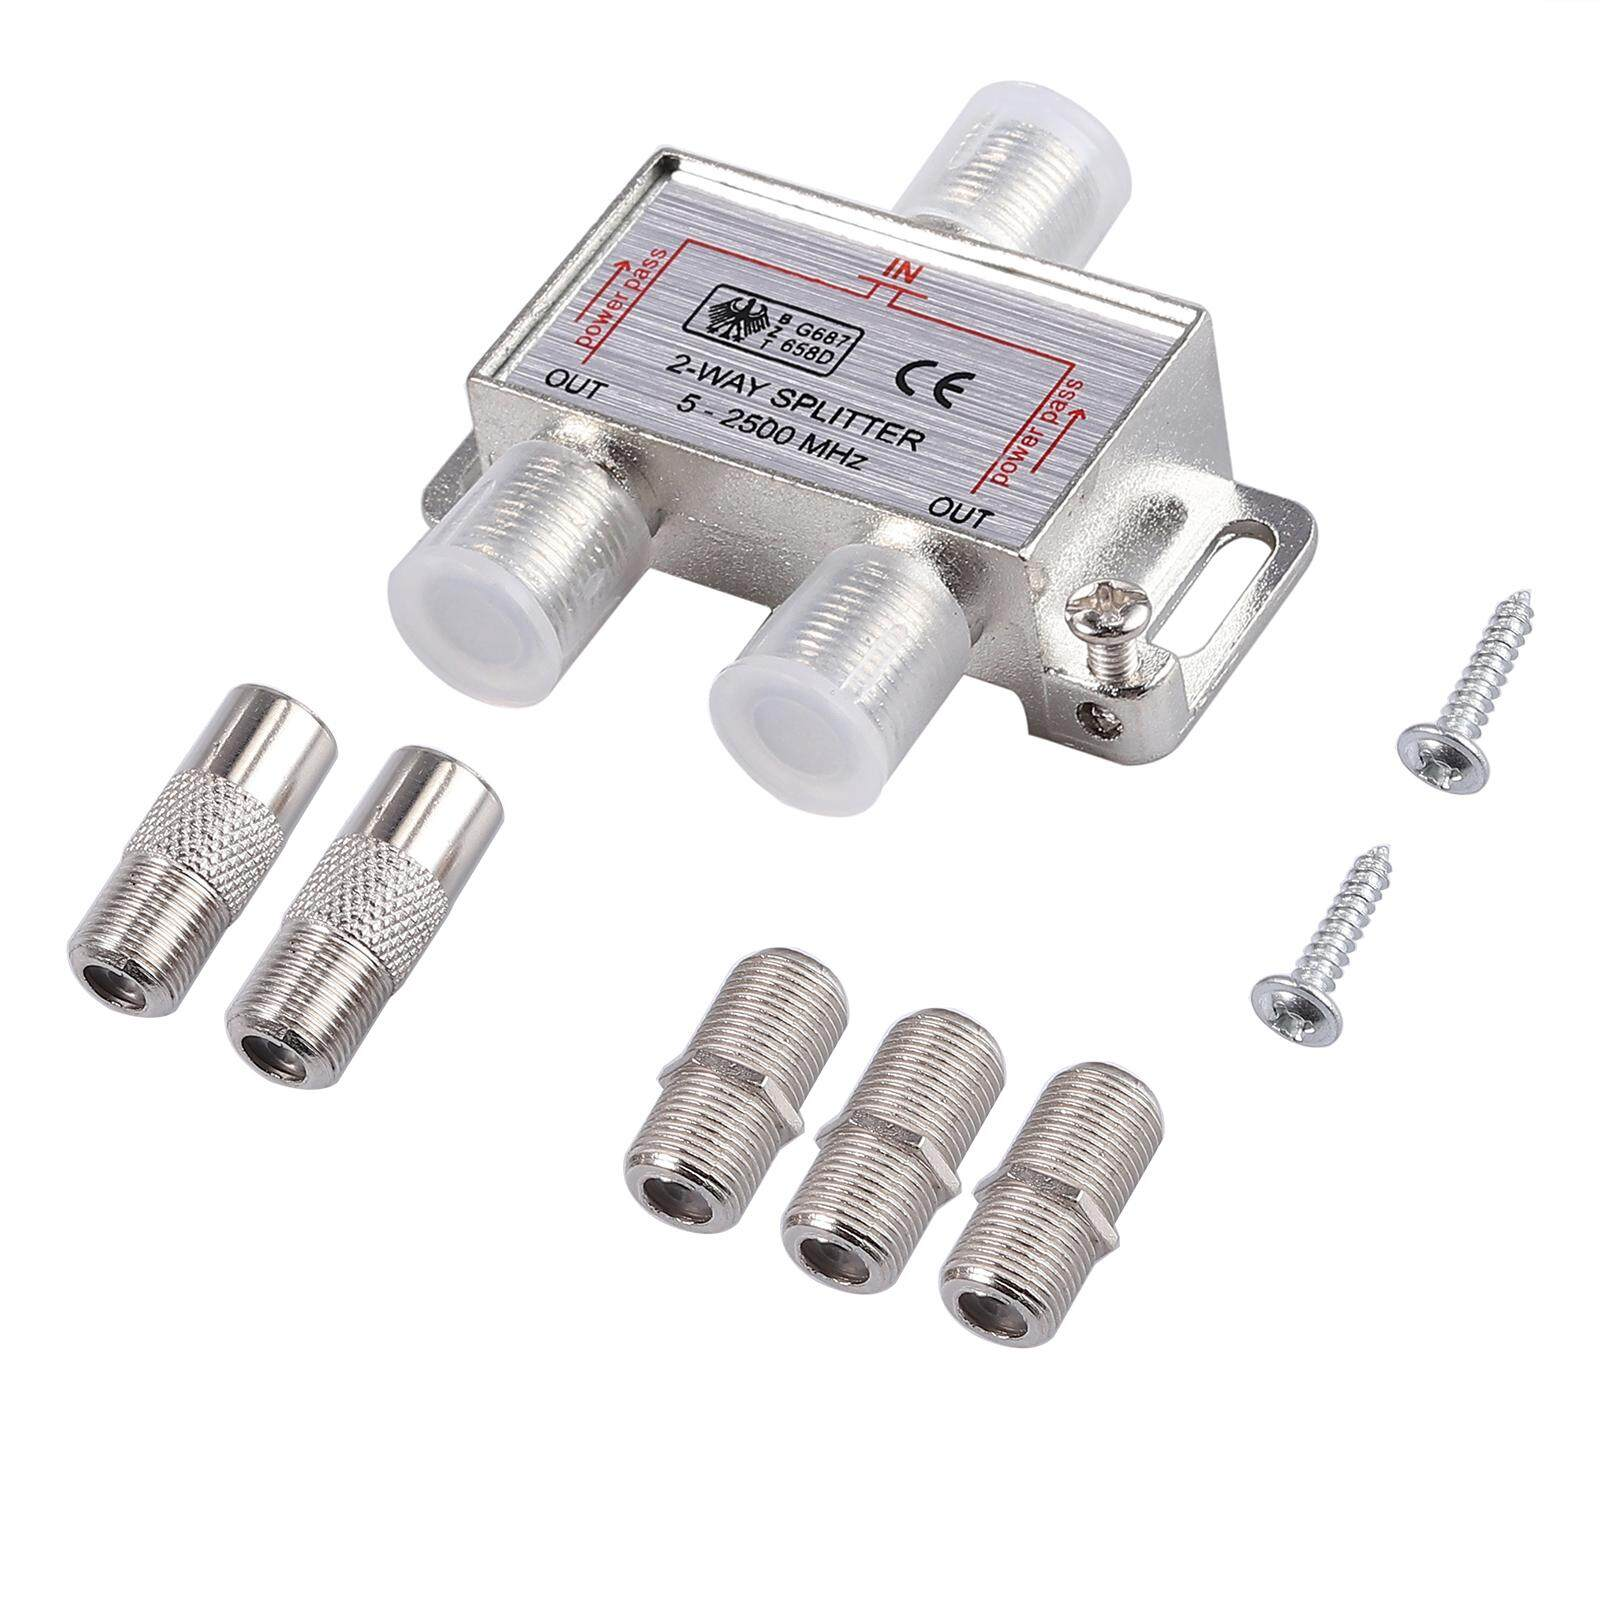 2-Way Coax Cable Splitter Bi-Directional Moca 5-2500mhz By Proster Official Store.